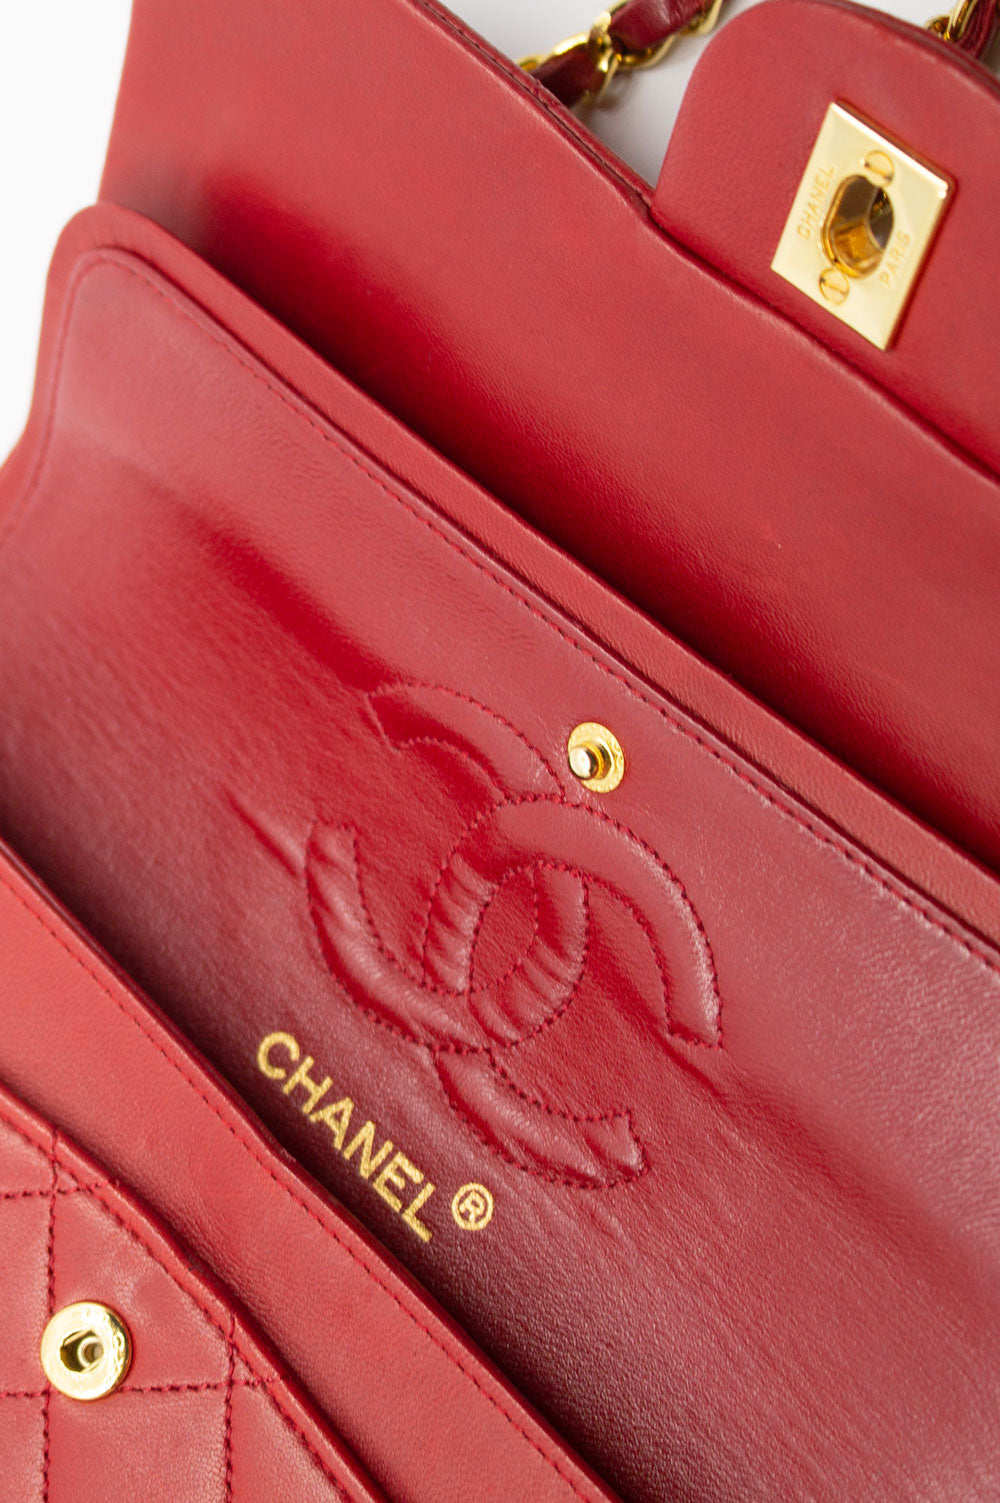 CHANEL Vintage Double Flap Bag Small